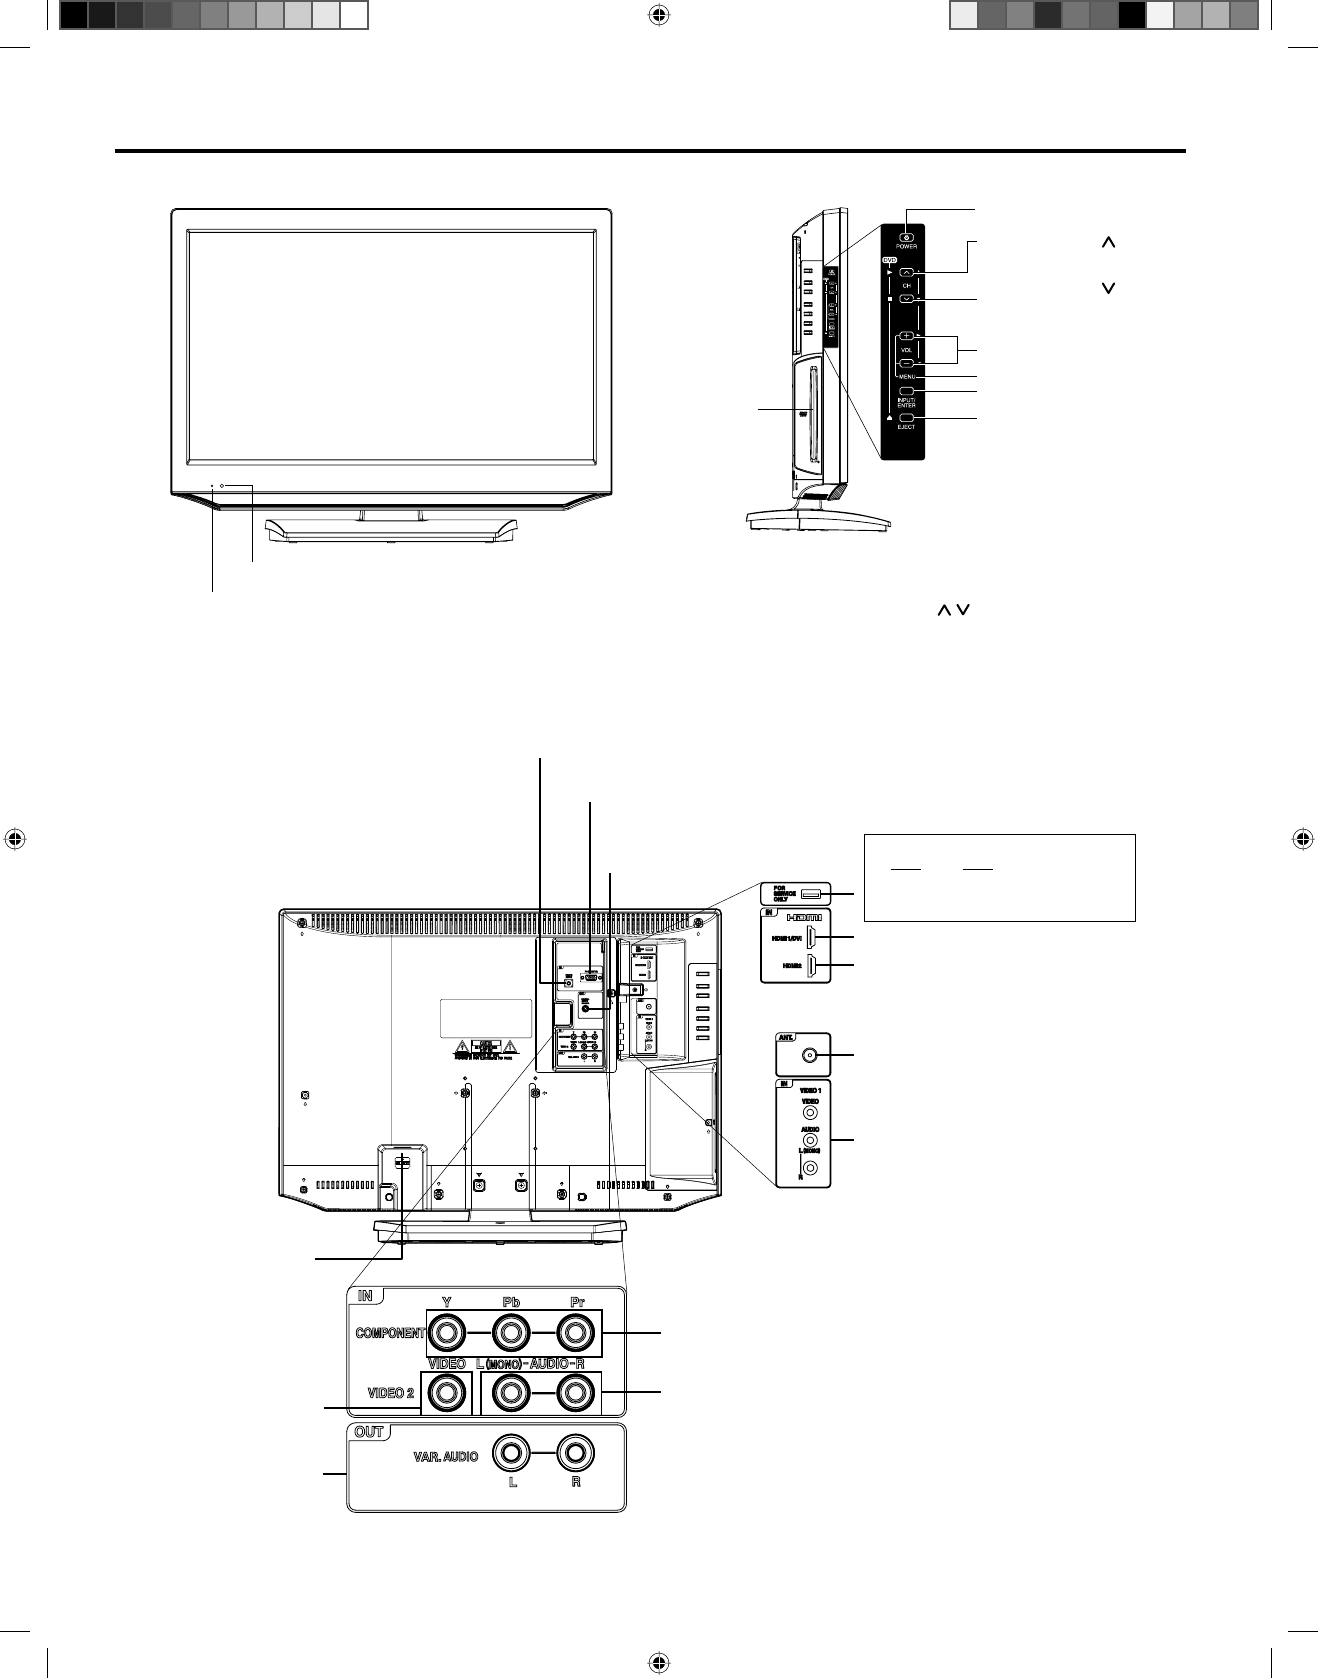 Page 12 of Hitachi Flat Panel Television L26D205 User